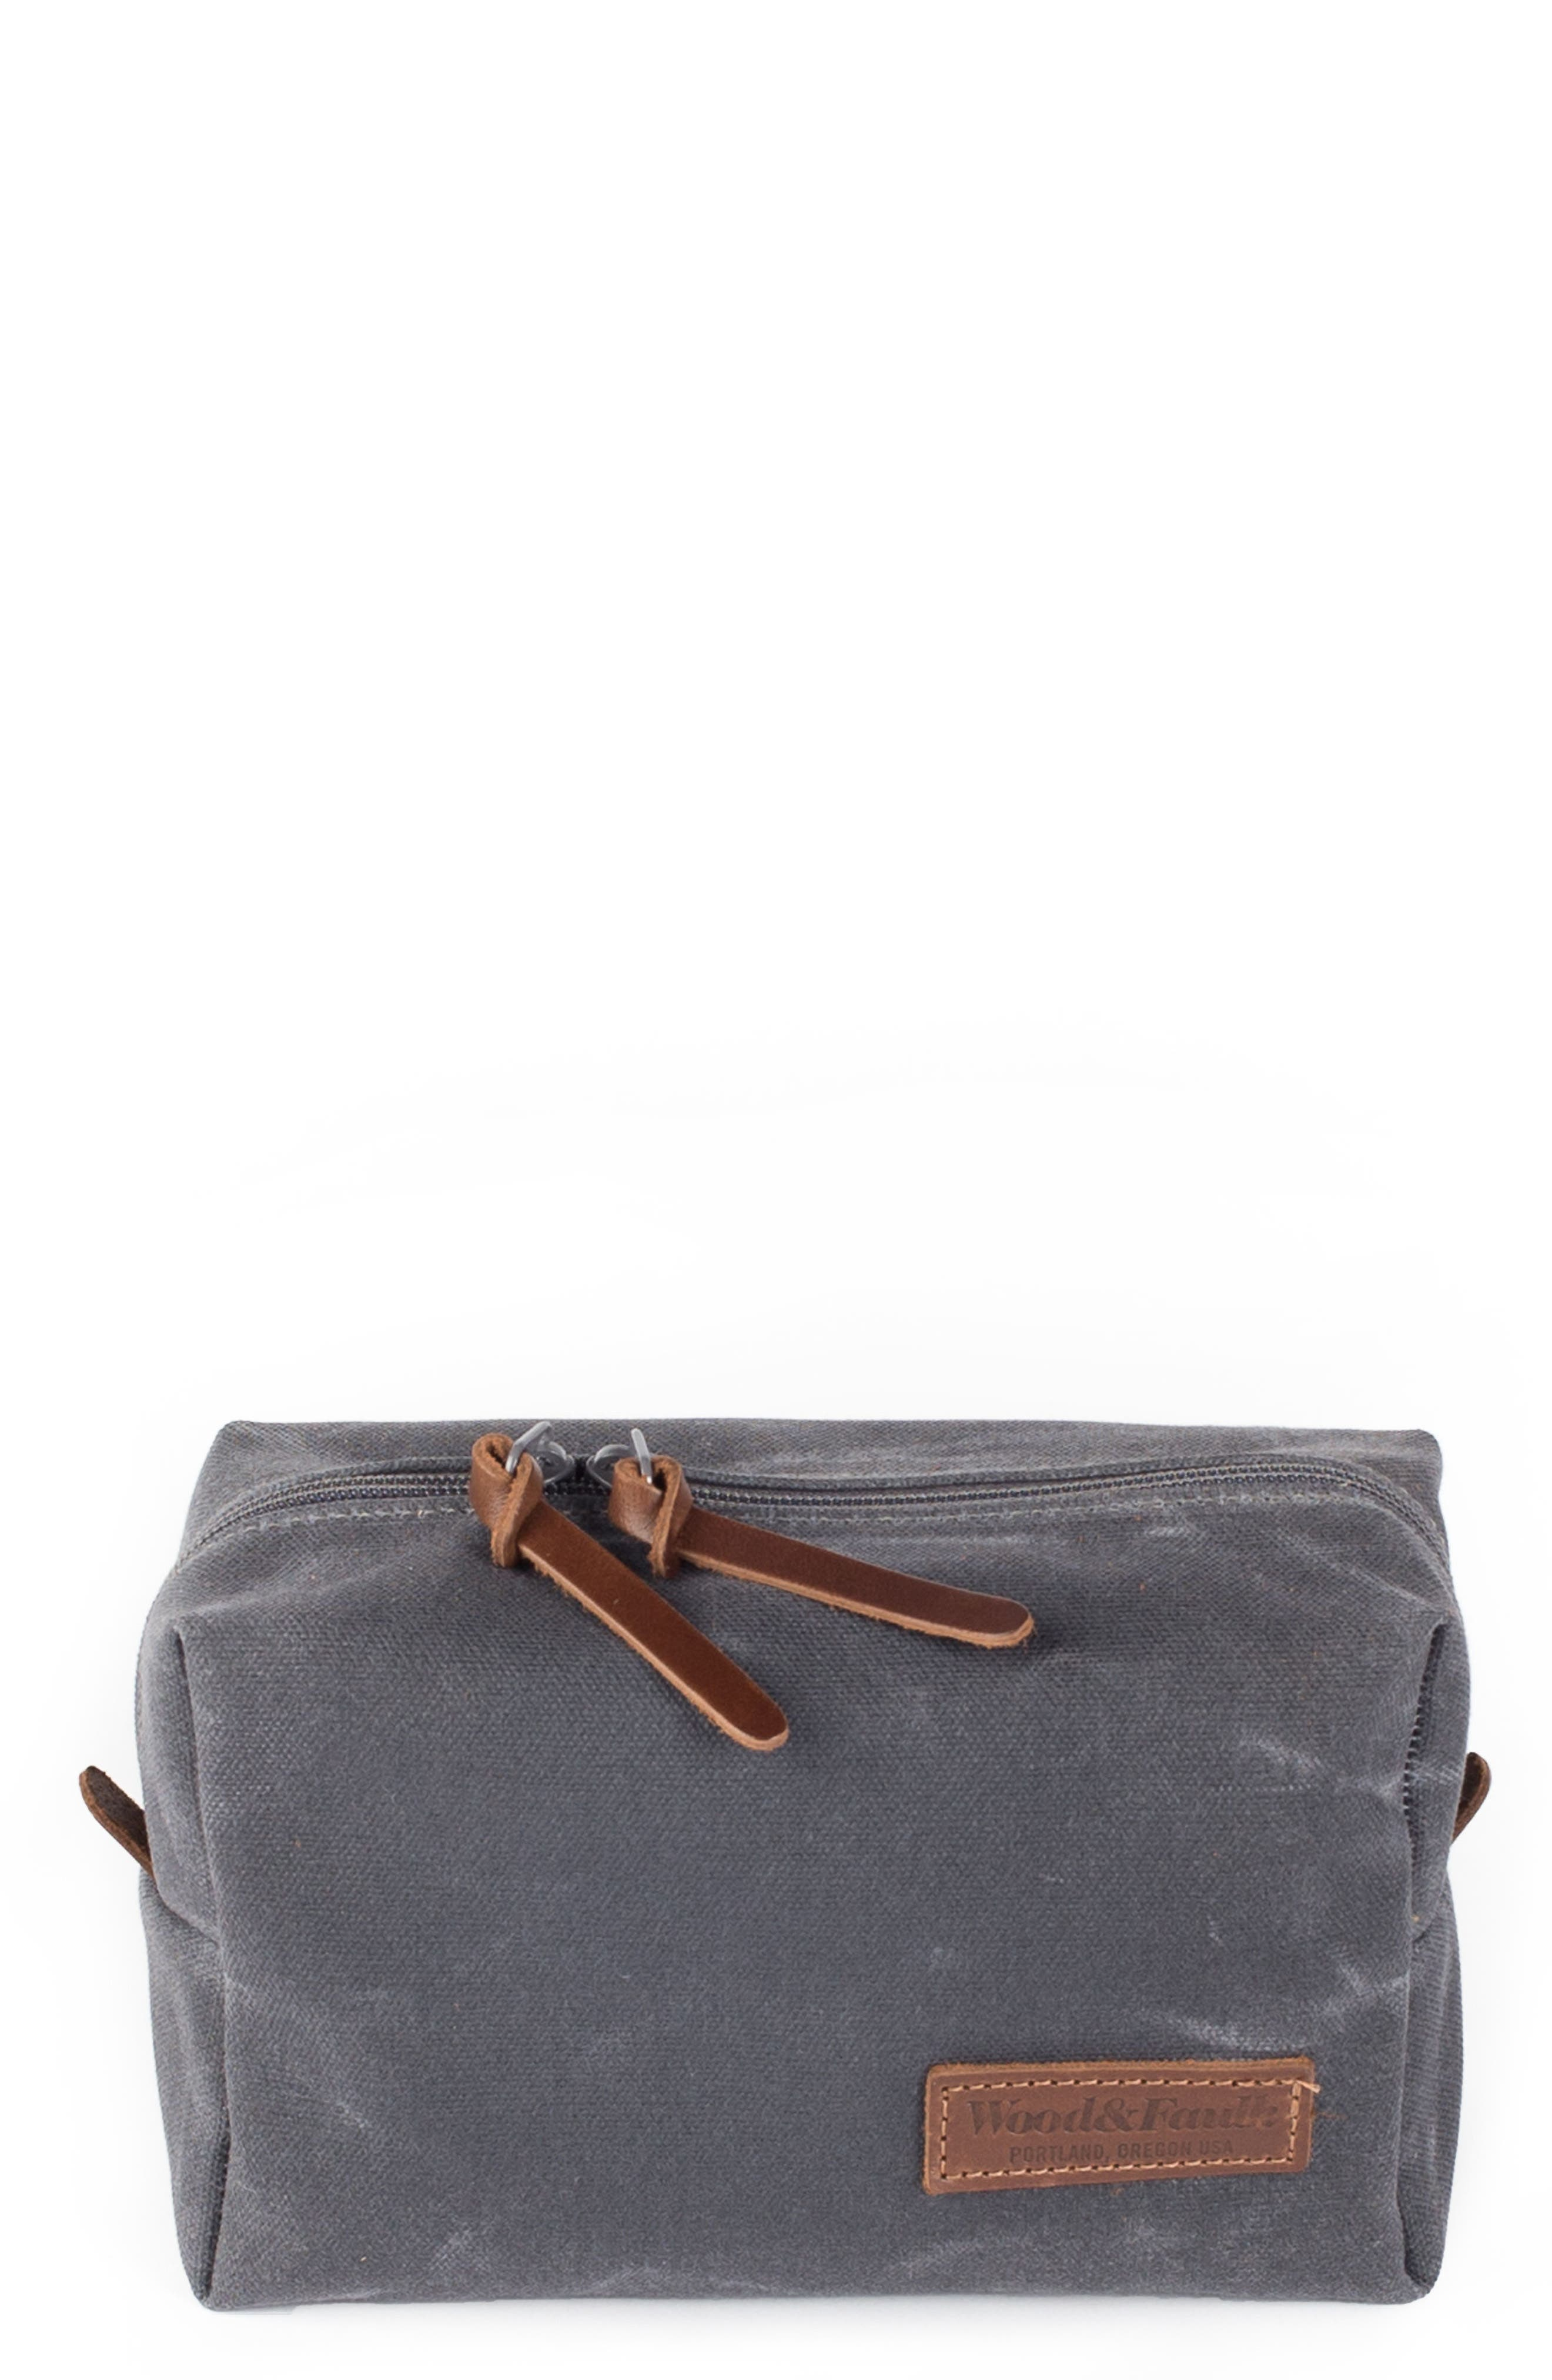 Traverse Waxed Canvas Dopp Kit,                         Main,                         color, 021